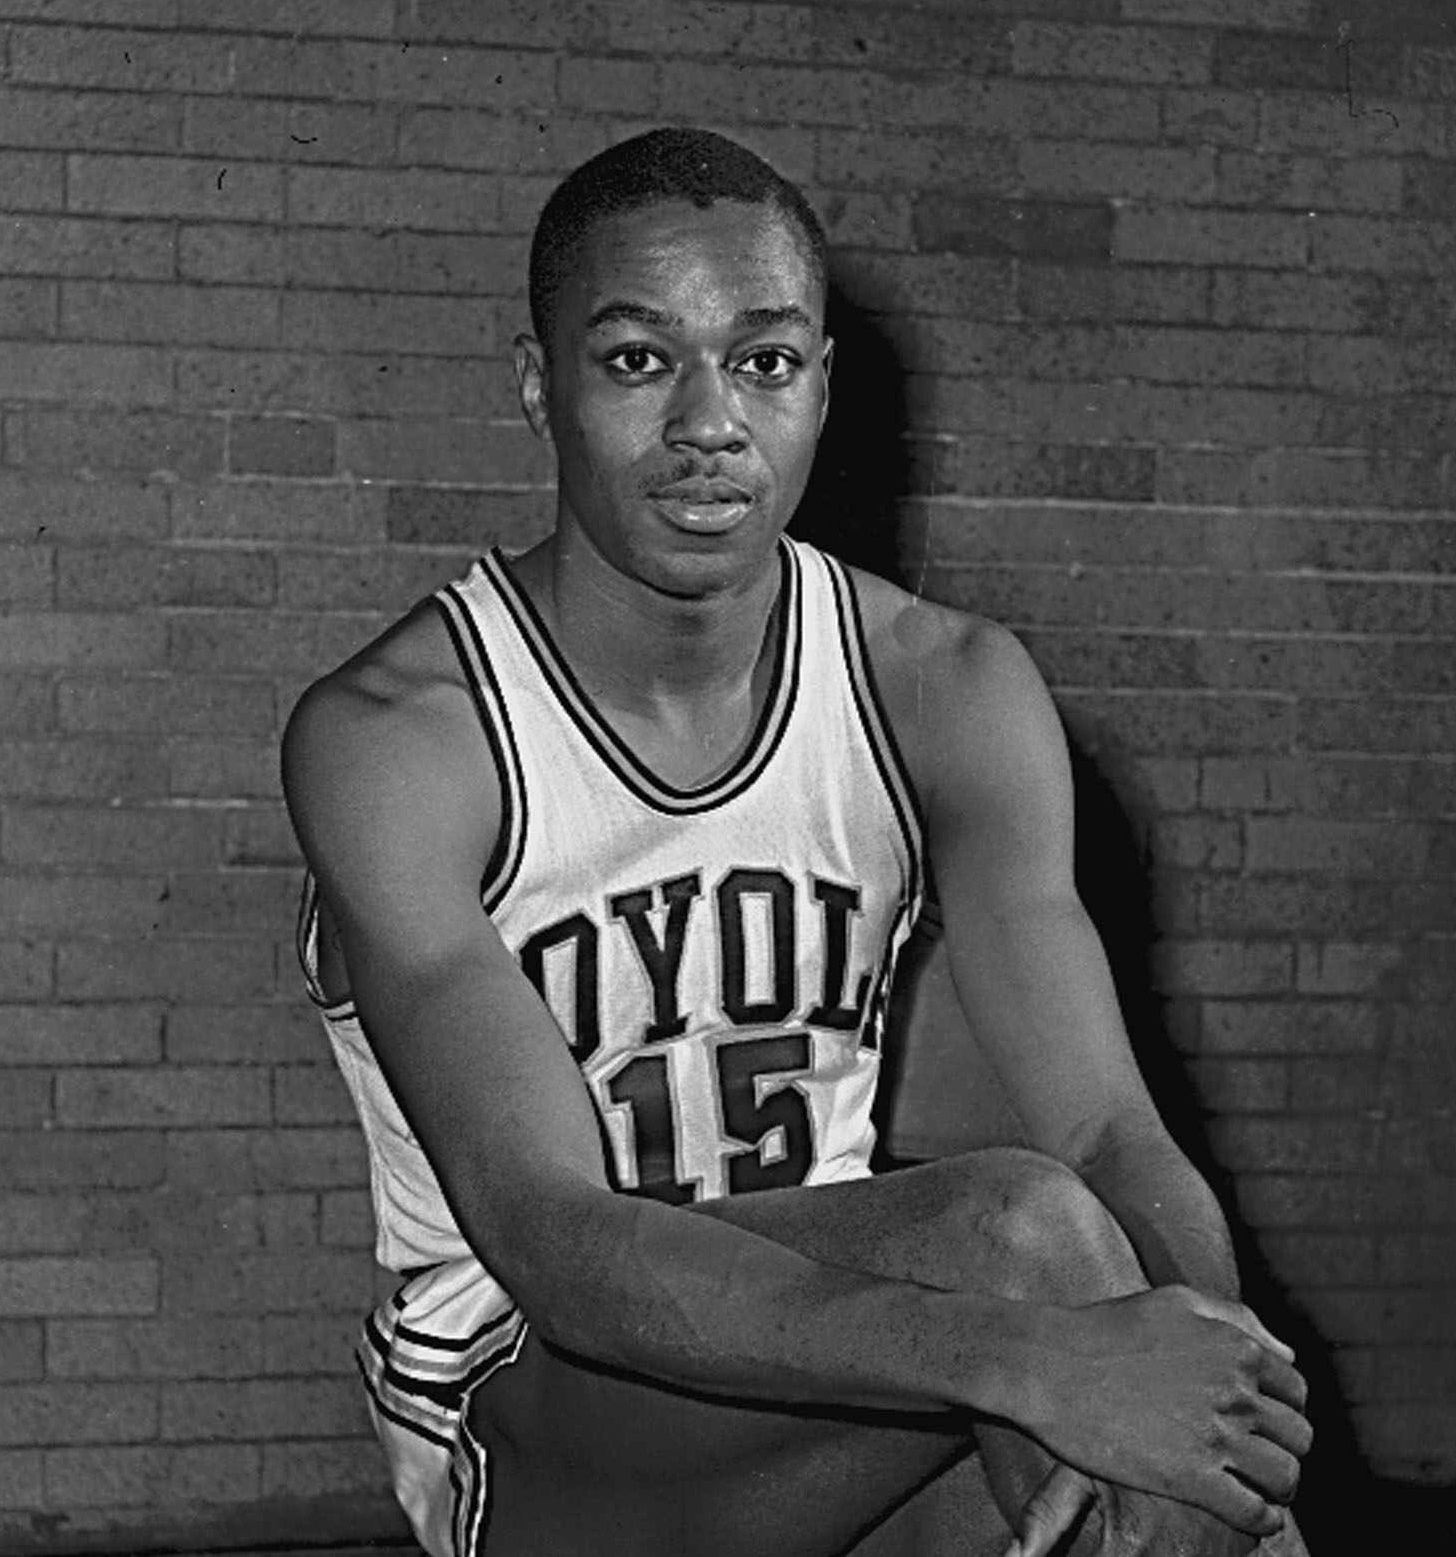 Jerry Harkness, a groundbreaker who helped lead Loyola to an NCAA men's basketball championship, has died at age 81.